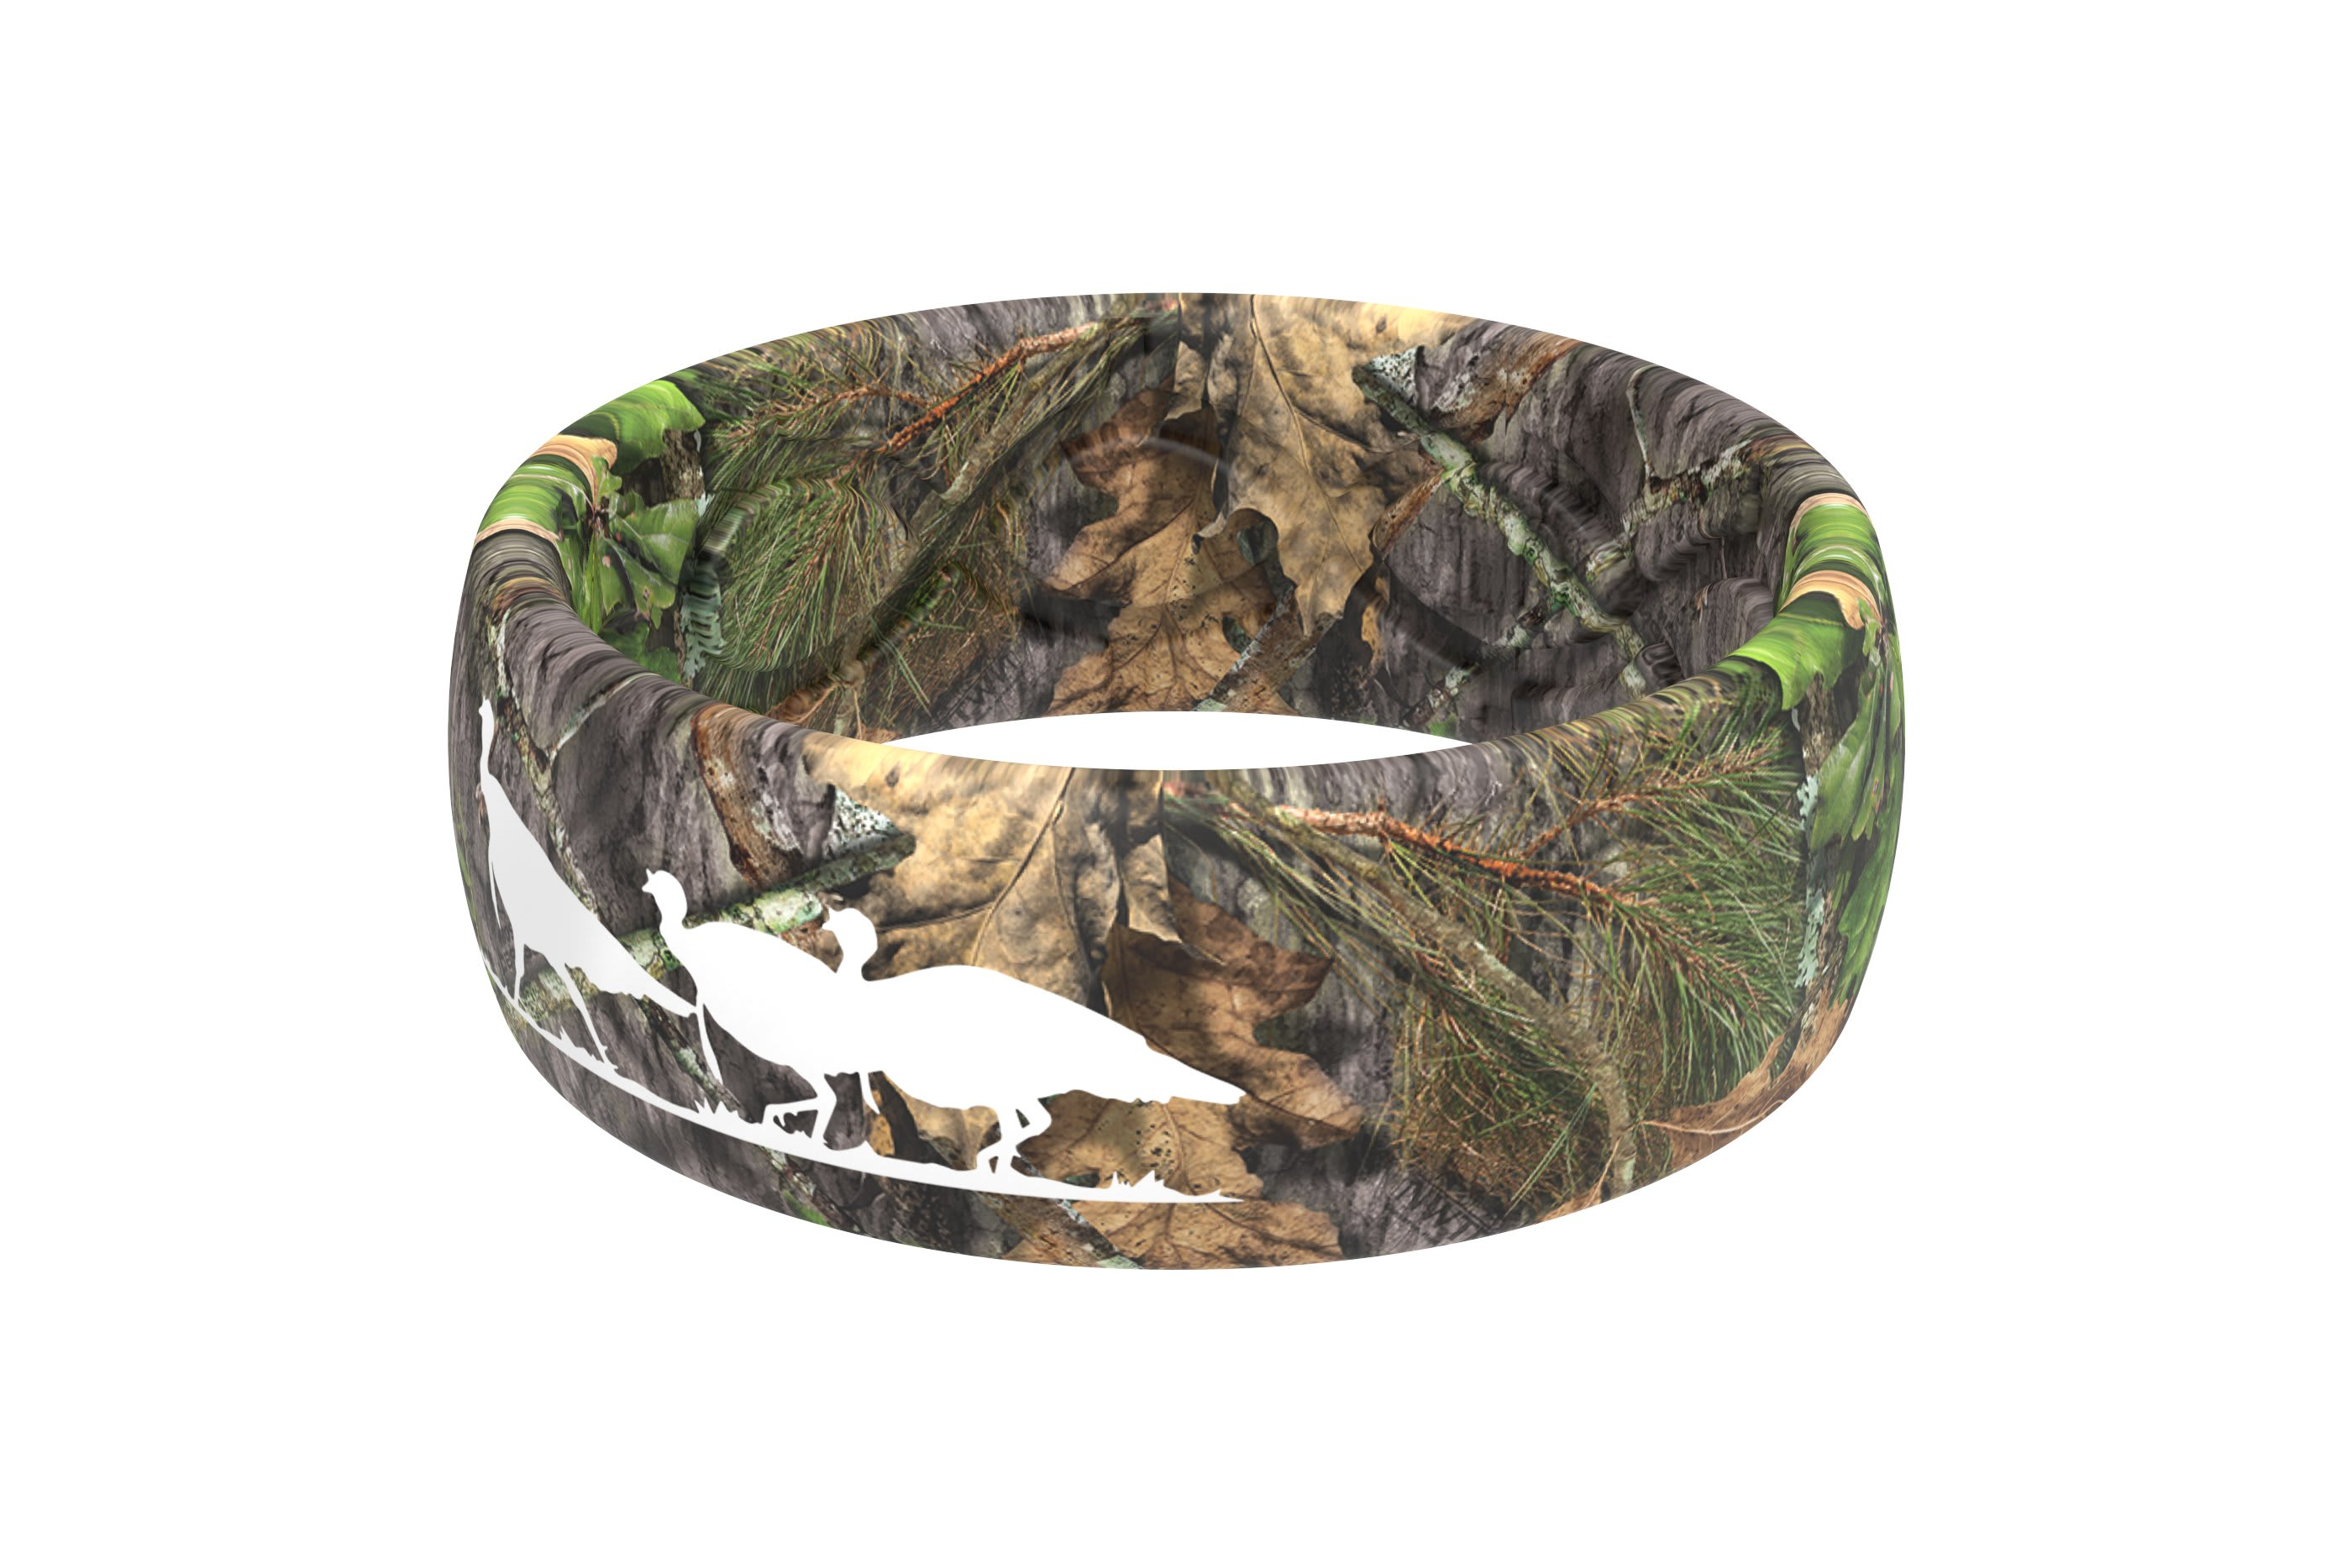 Original Camo NWTF Mossy Oak Obsession -  viewed from side